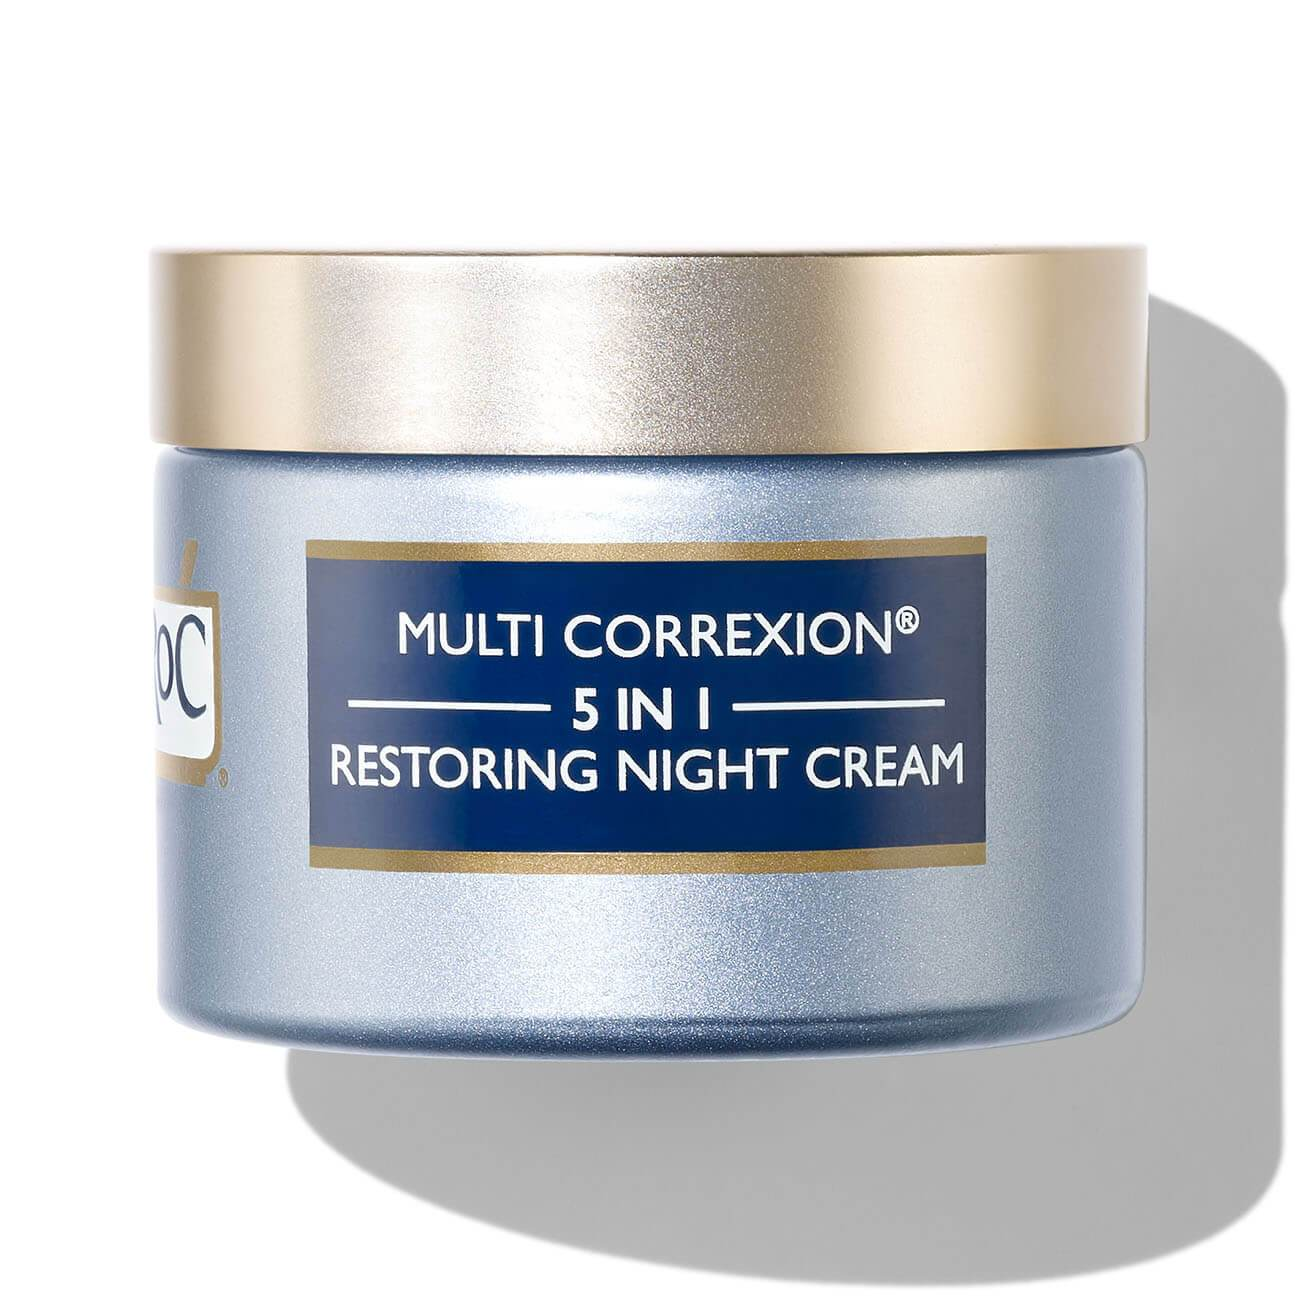 RoC MULTI CORREXION® 5 In 1 Restoring Night Cream